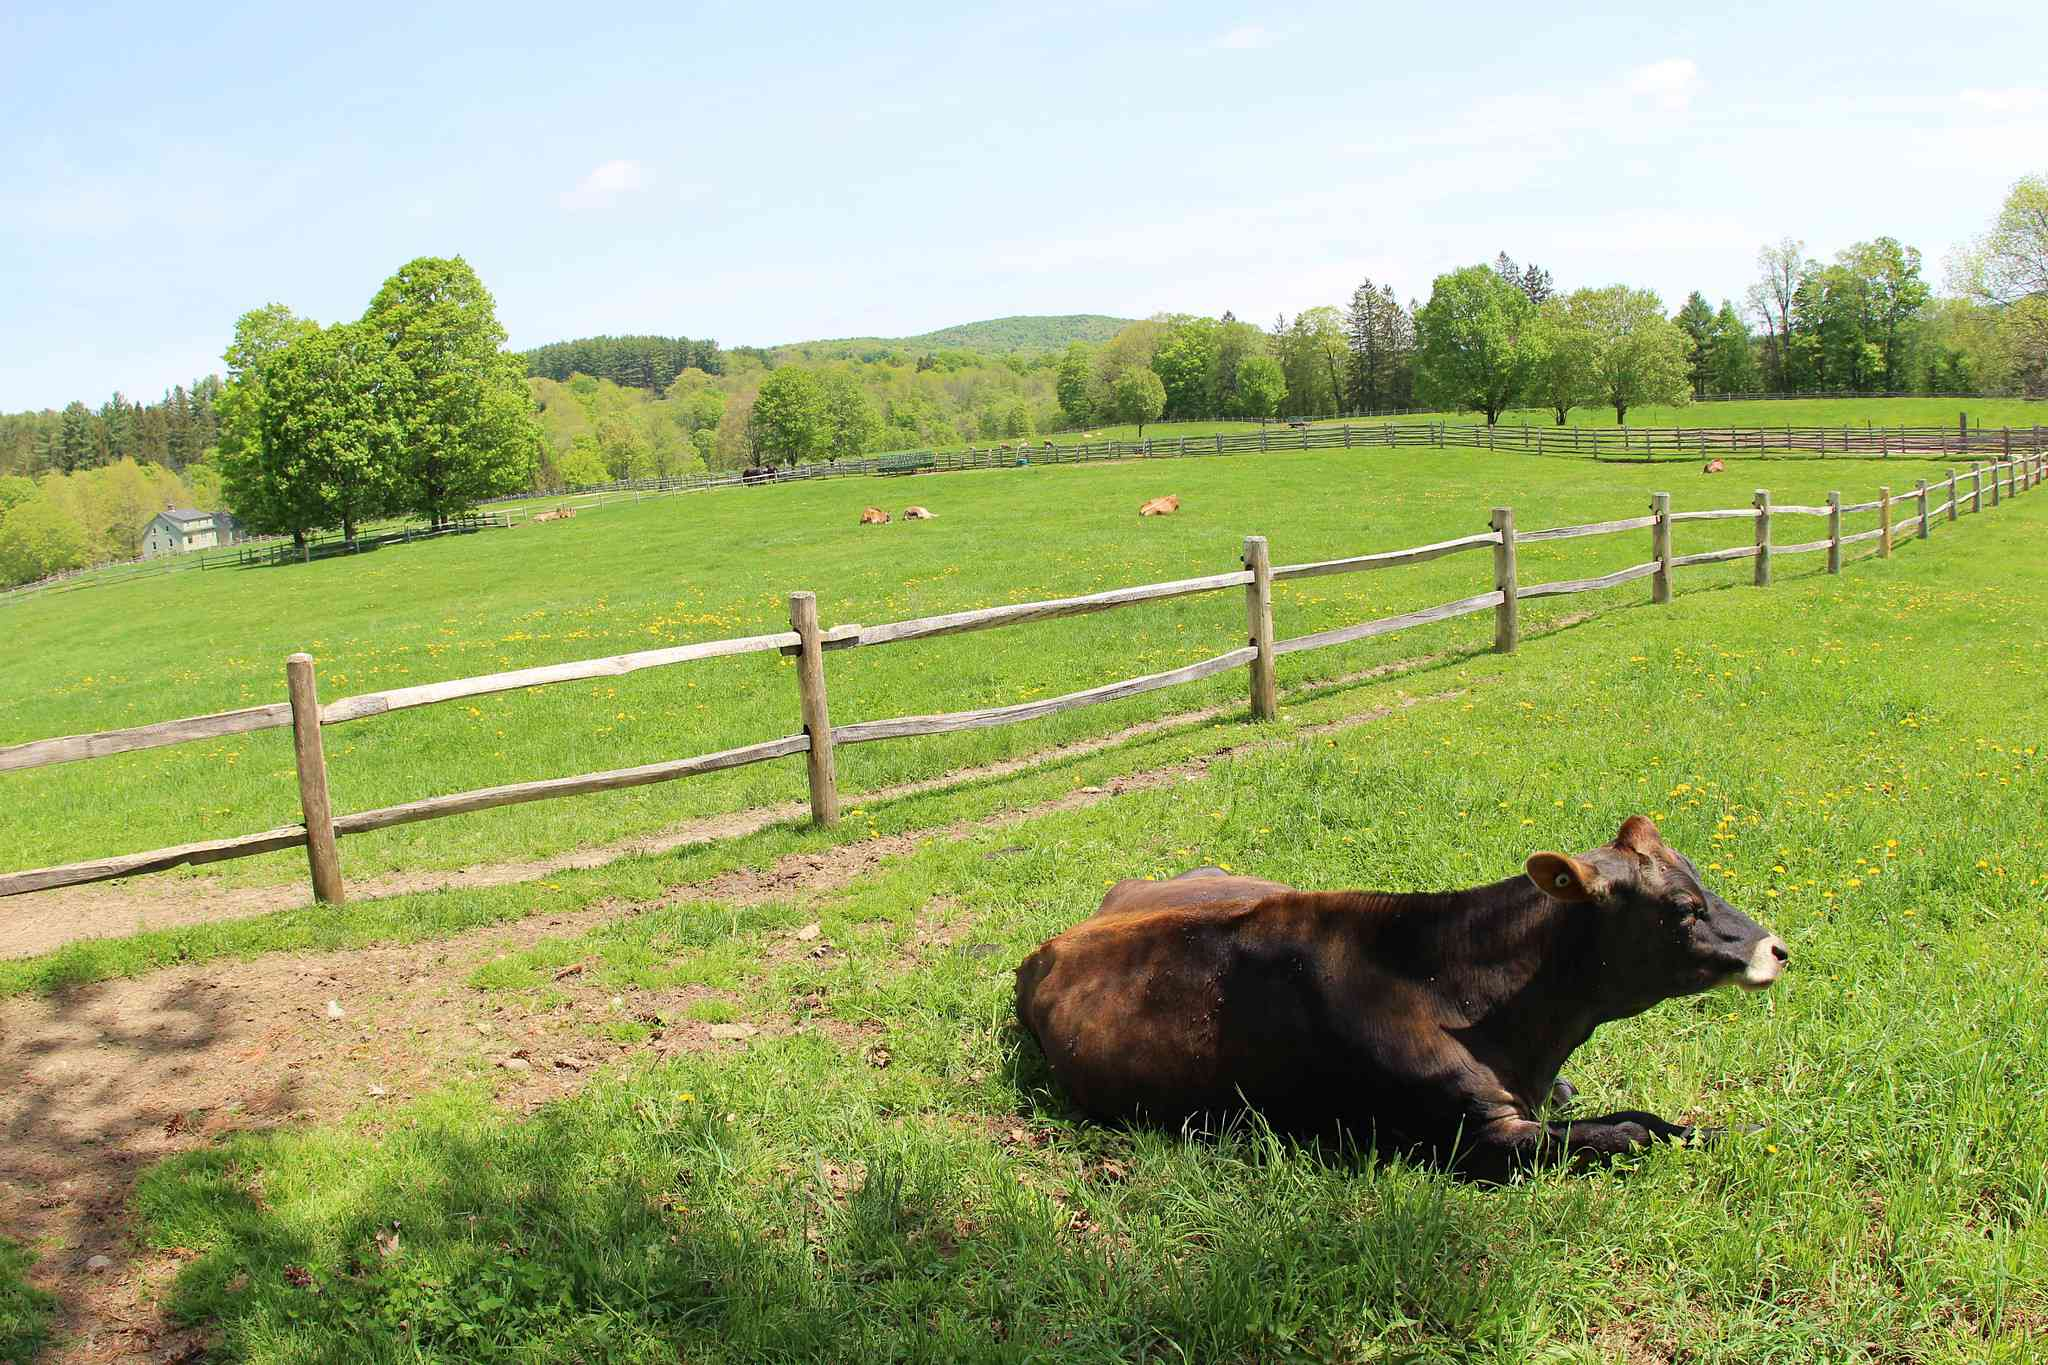 A cow lies on the ground in a grassy, fenced pasture